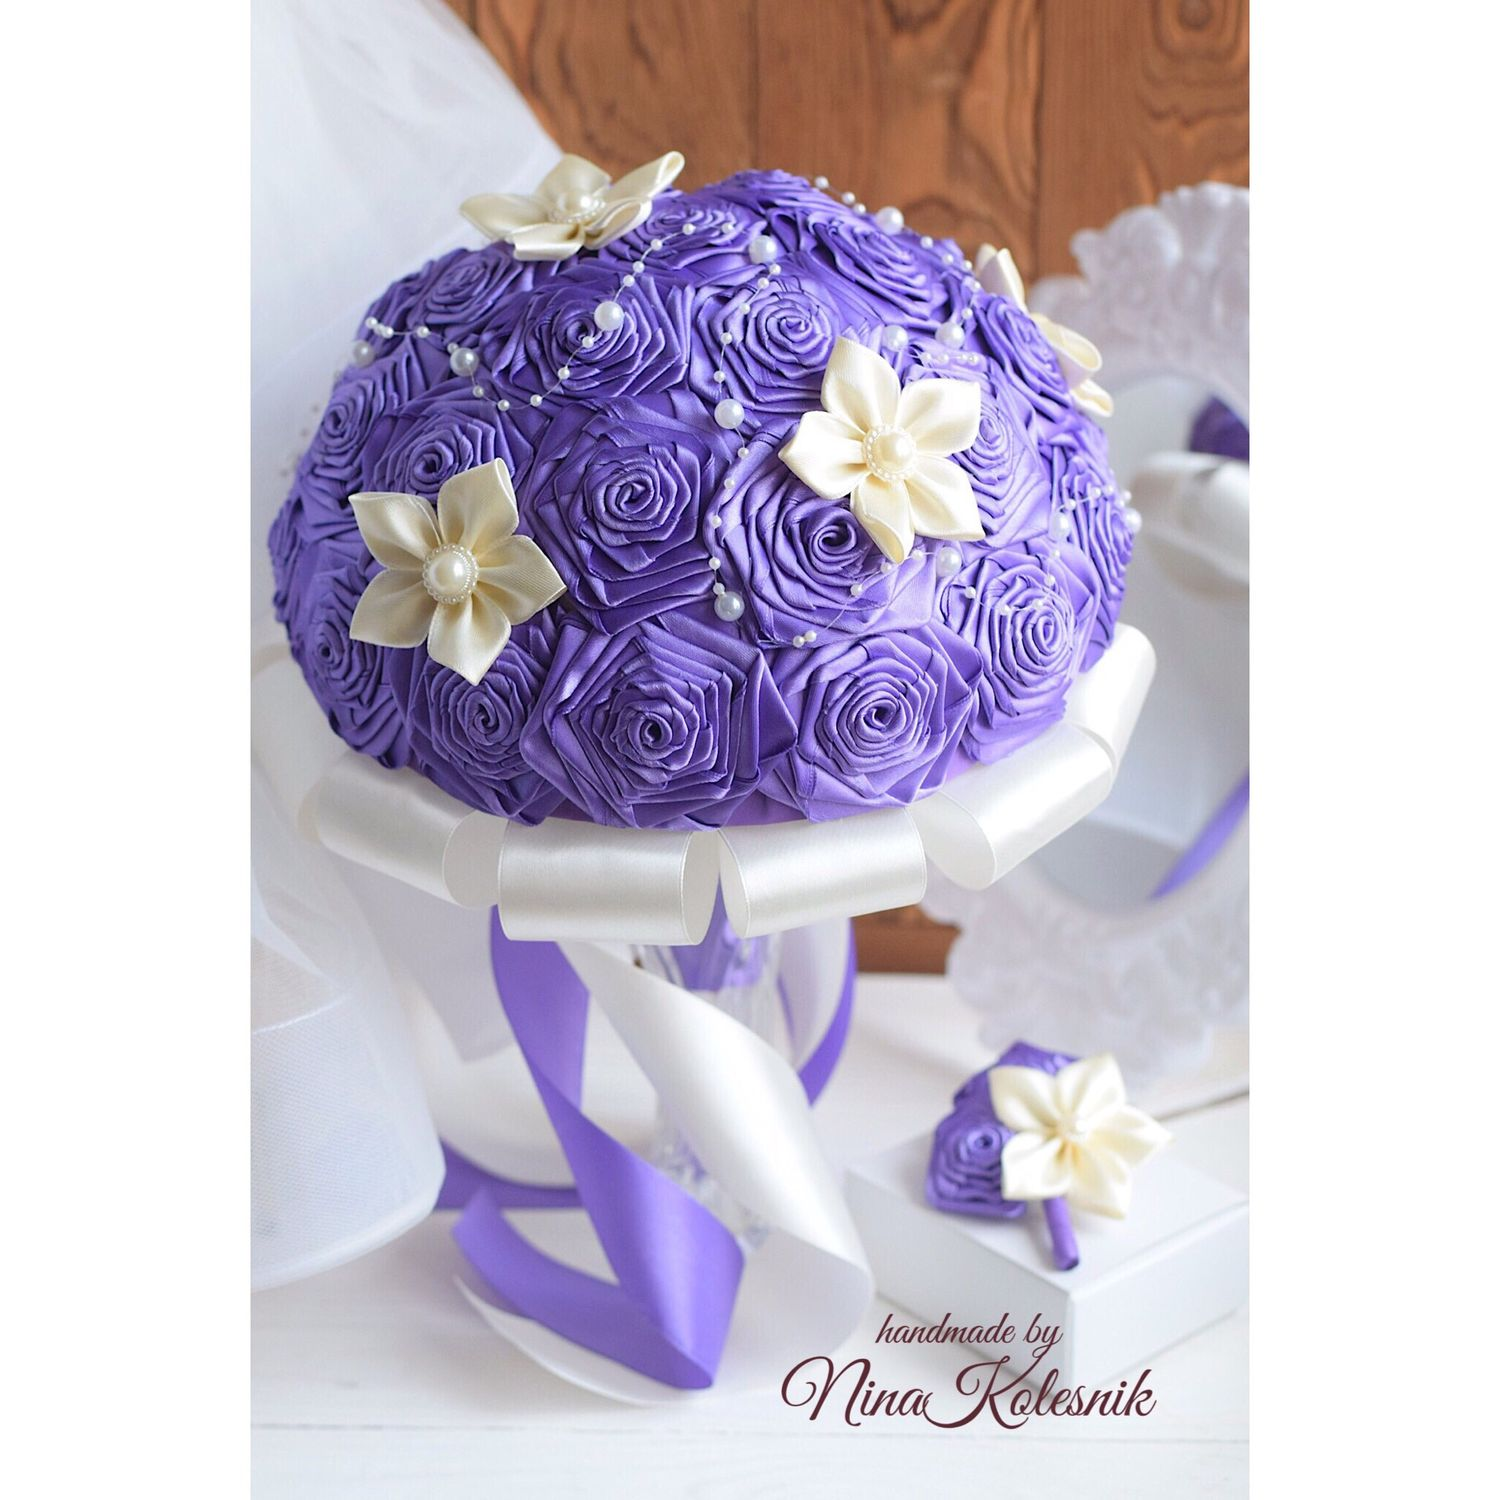 Wedding brooch bouquet bridal bouquet with ribbons shop online on buy wedding brooch bouquet bridal bouquet with ribbons izmirmasajfo